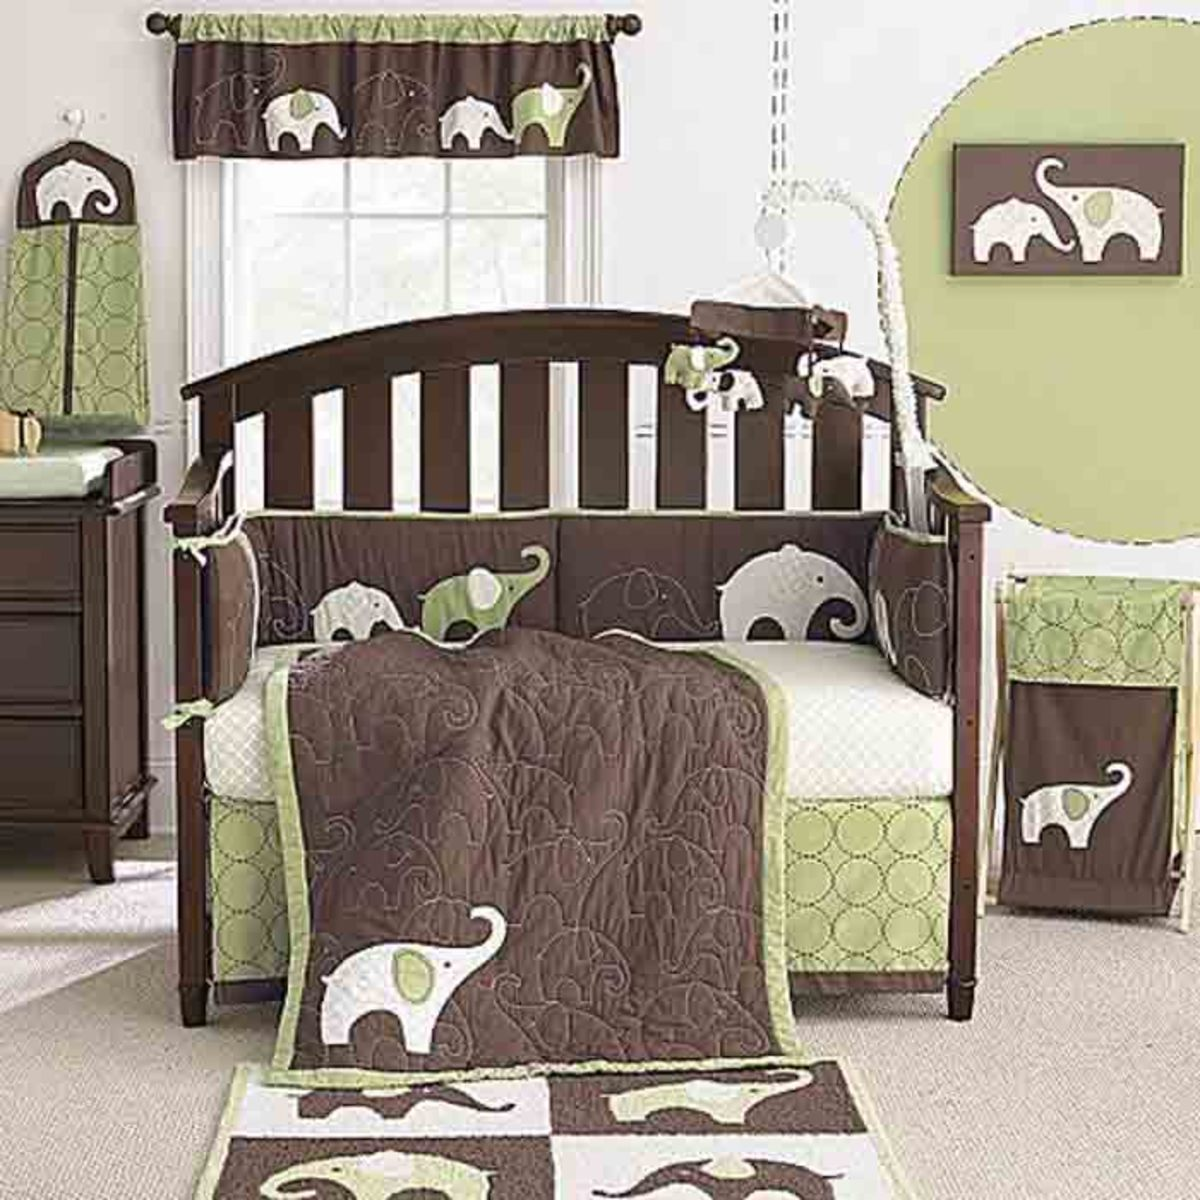 decorating ideas for a baby boy nursery